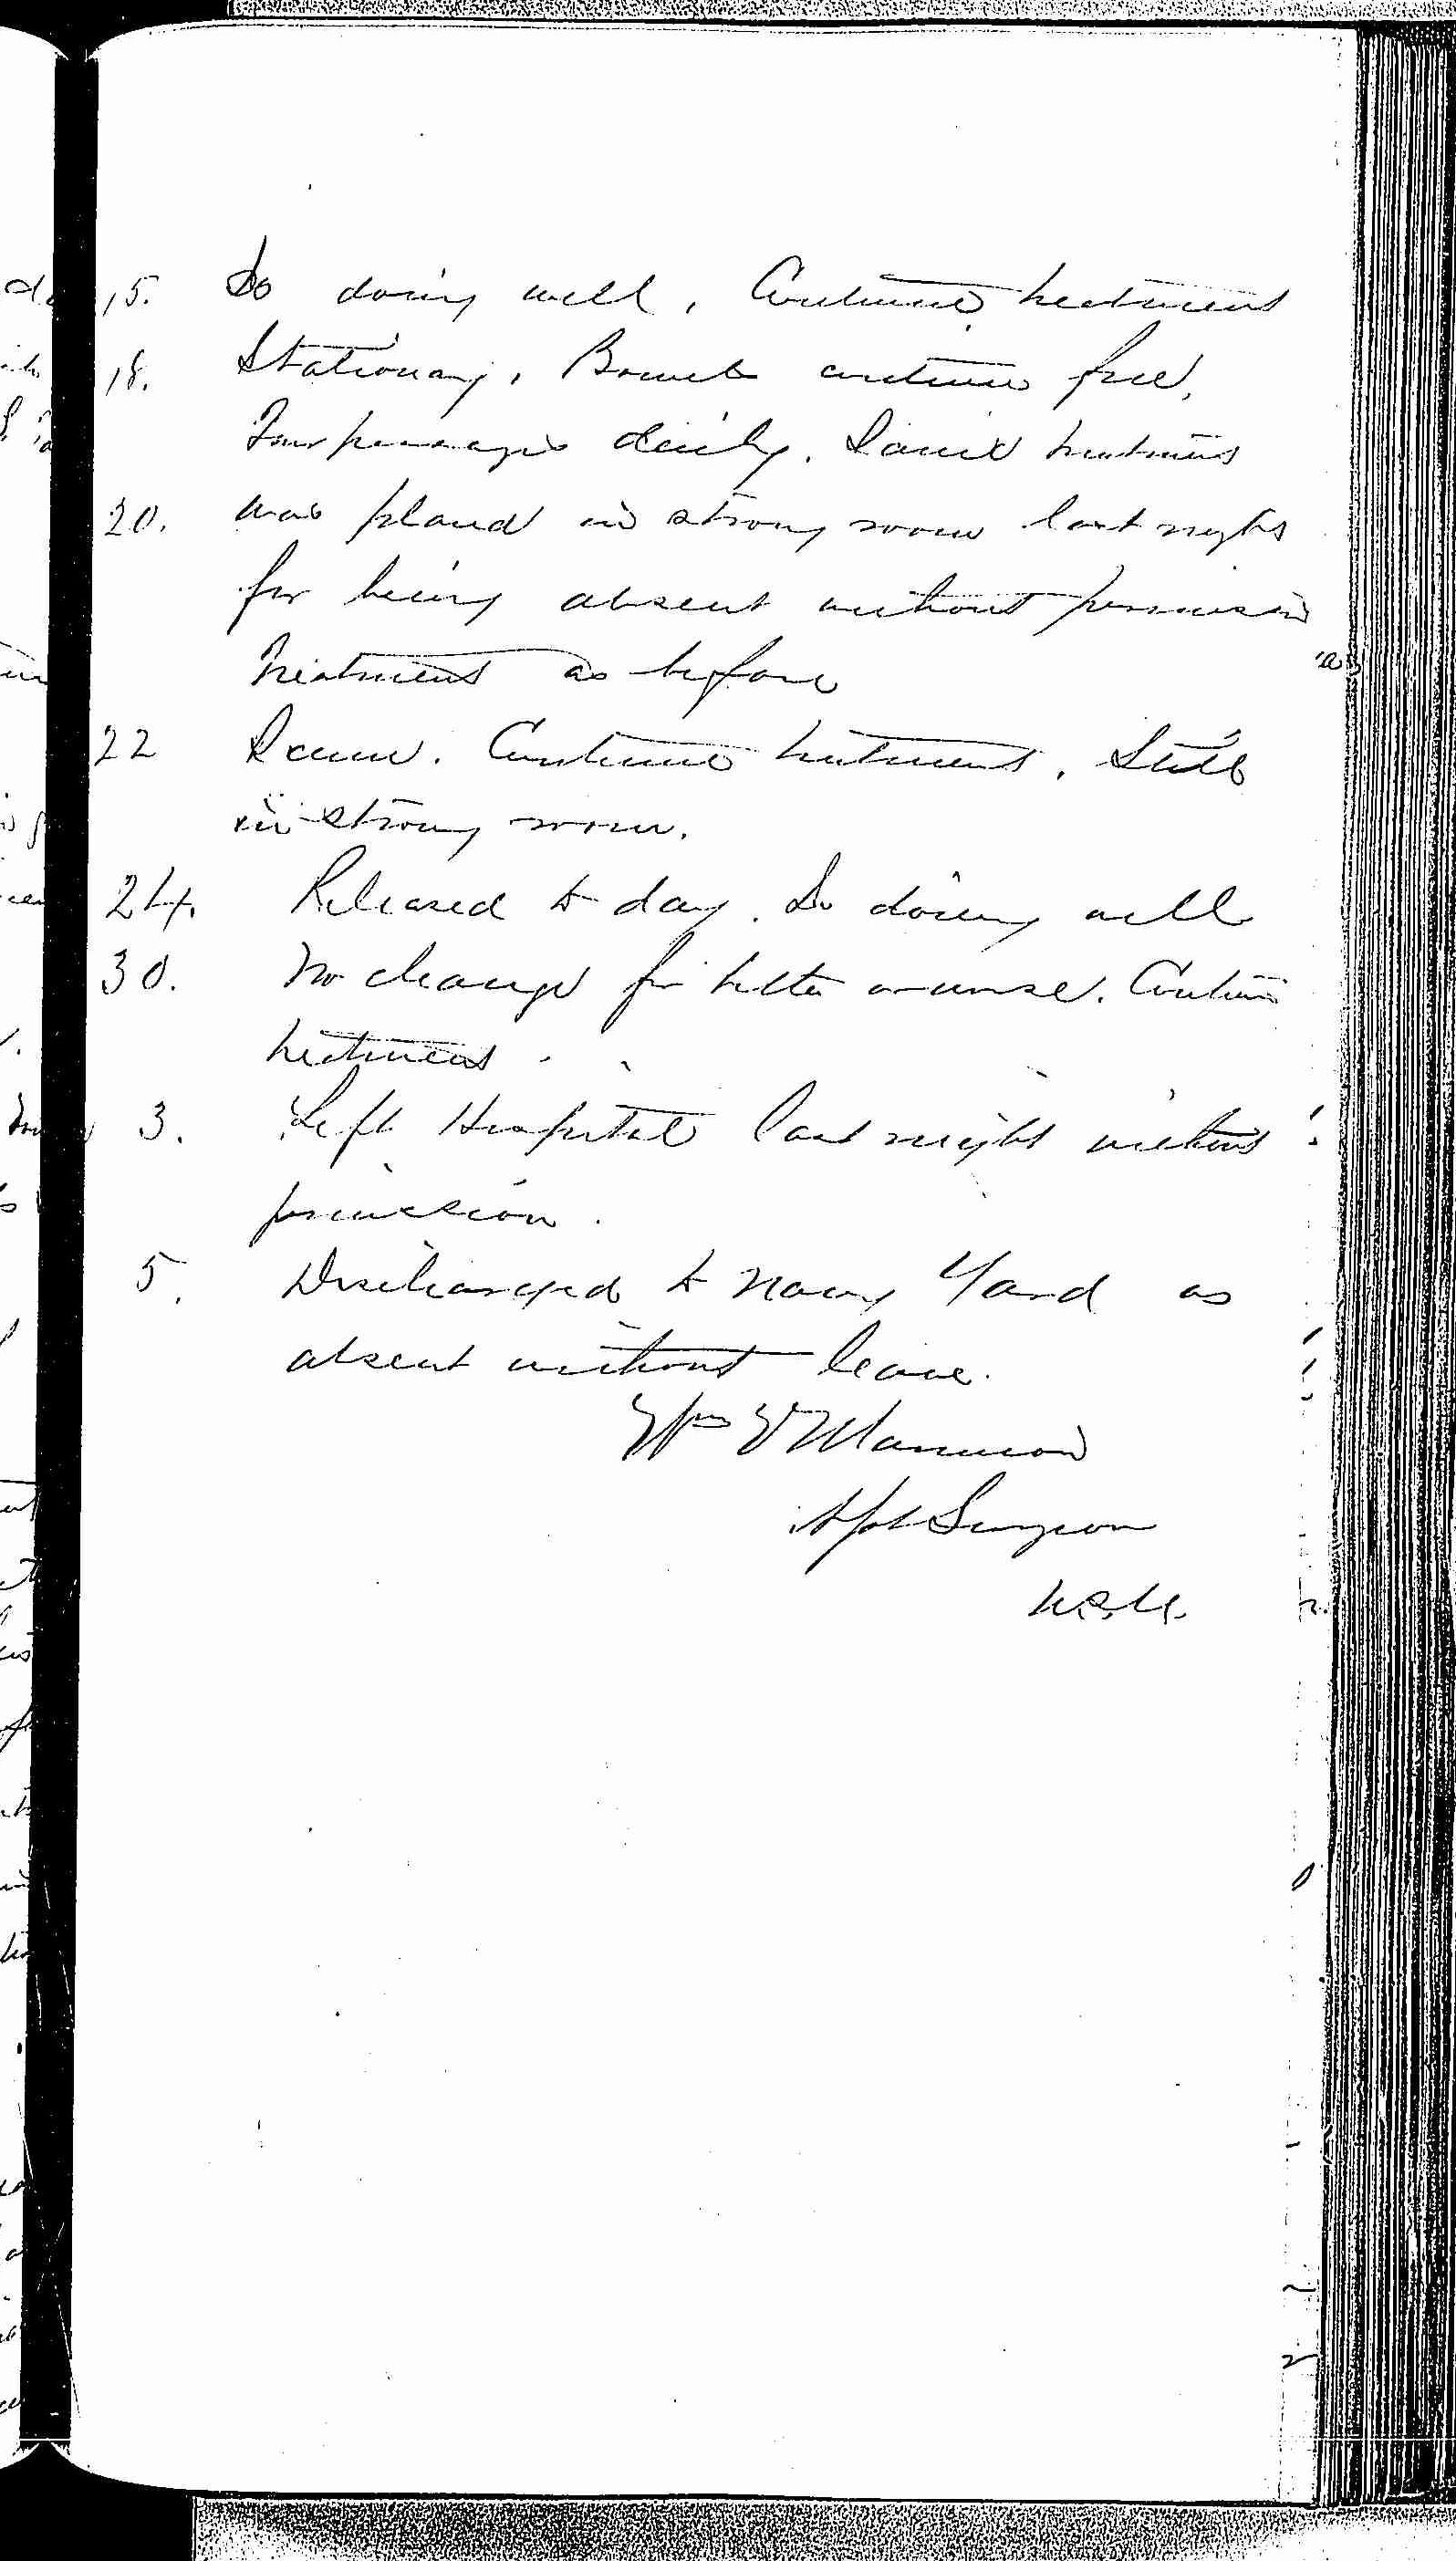 Entry for Edward Stevens (page 5 of 5) in the log Hospital Tickets and Case Papers - Naval Hospital - Washington, D.C. - 1868-69